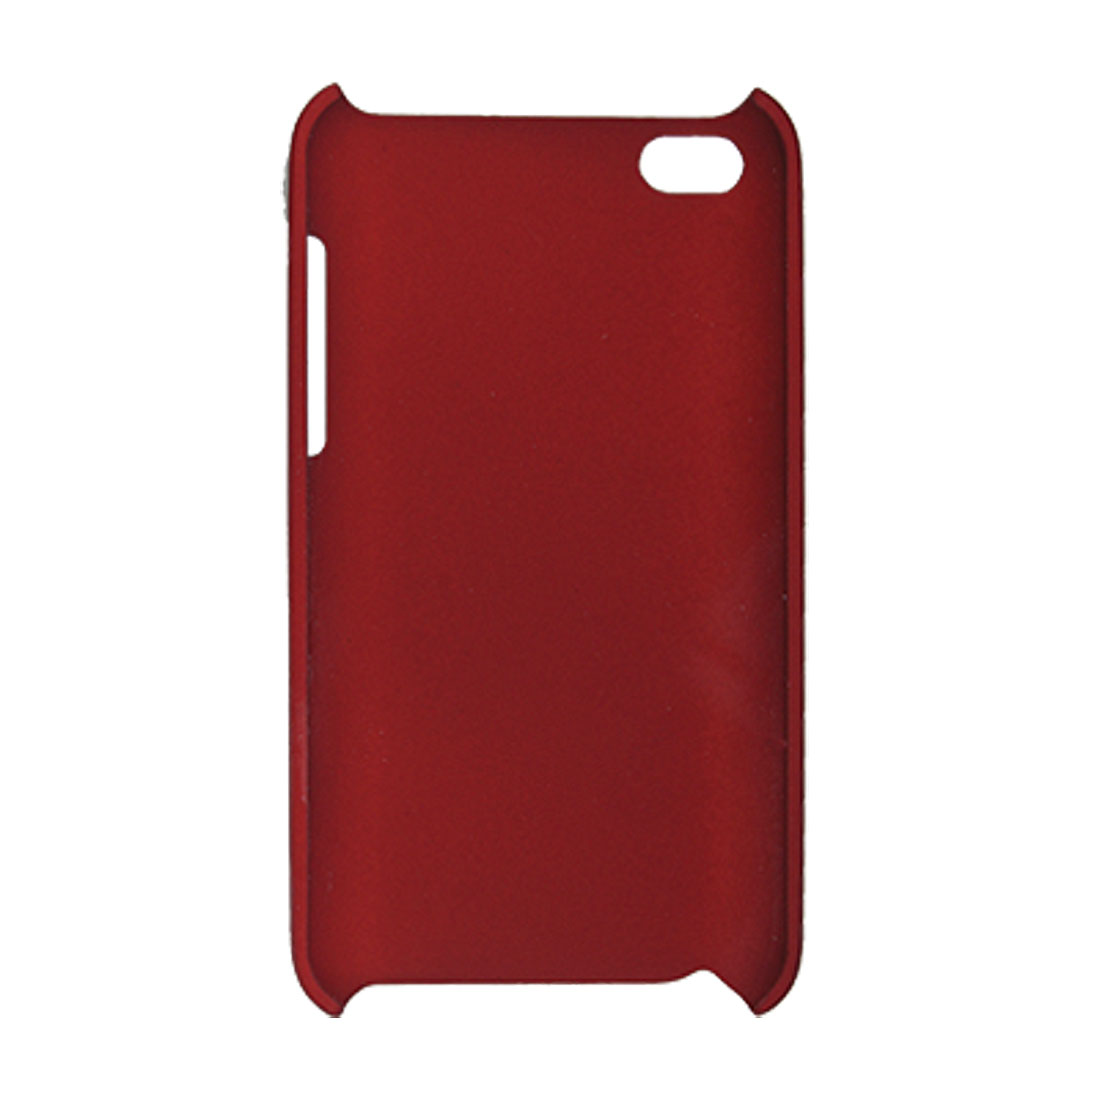 Carmine Hard Plastic Back Cover Guard for iPod Touch 4